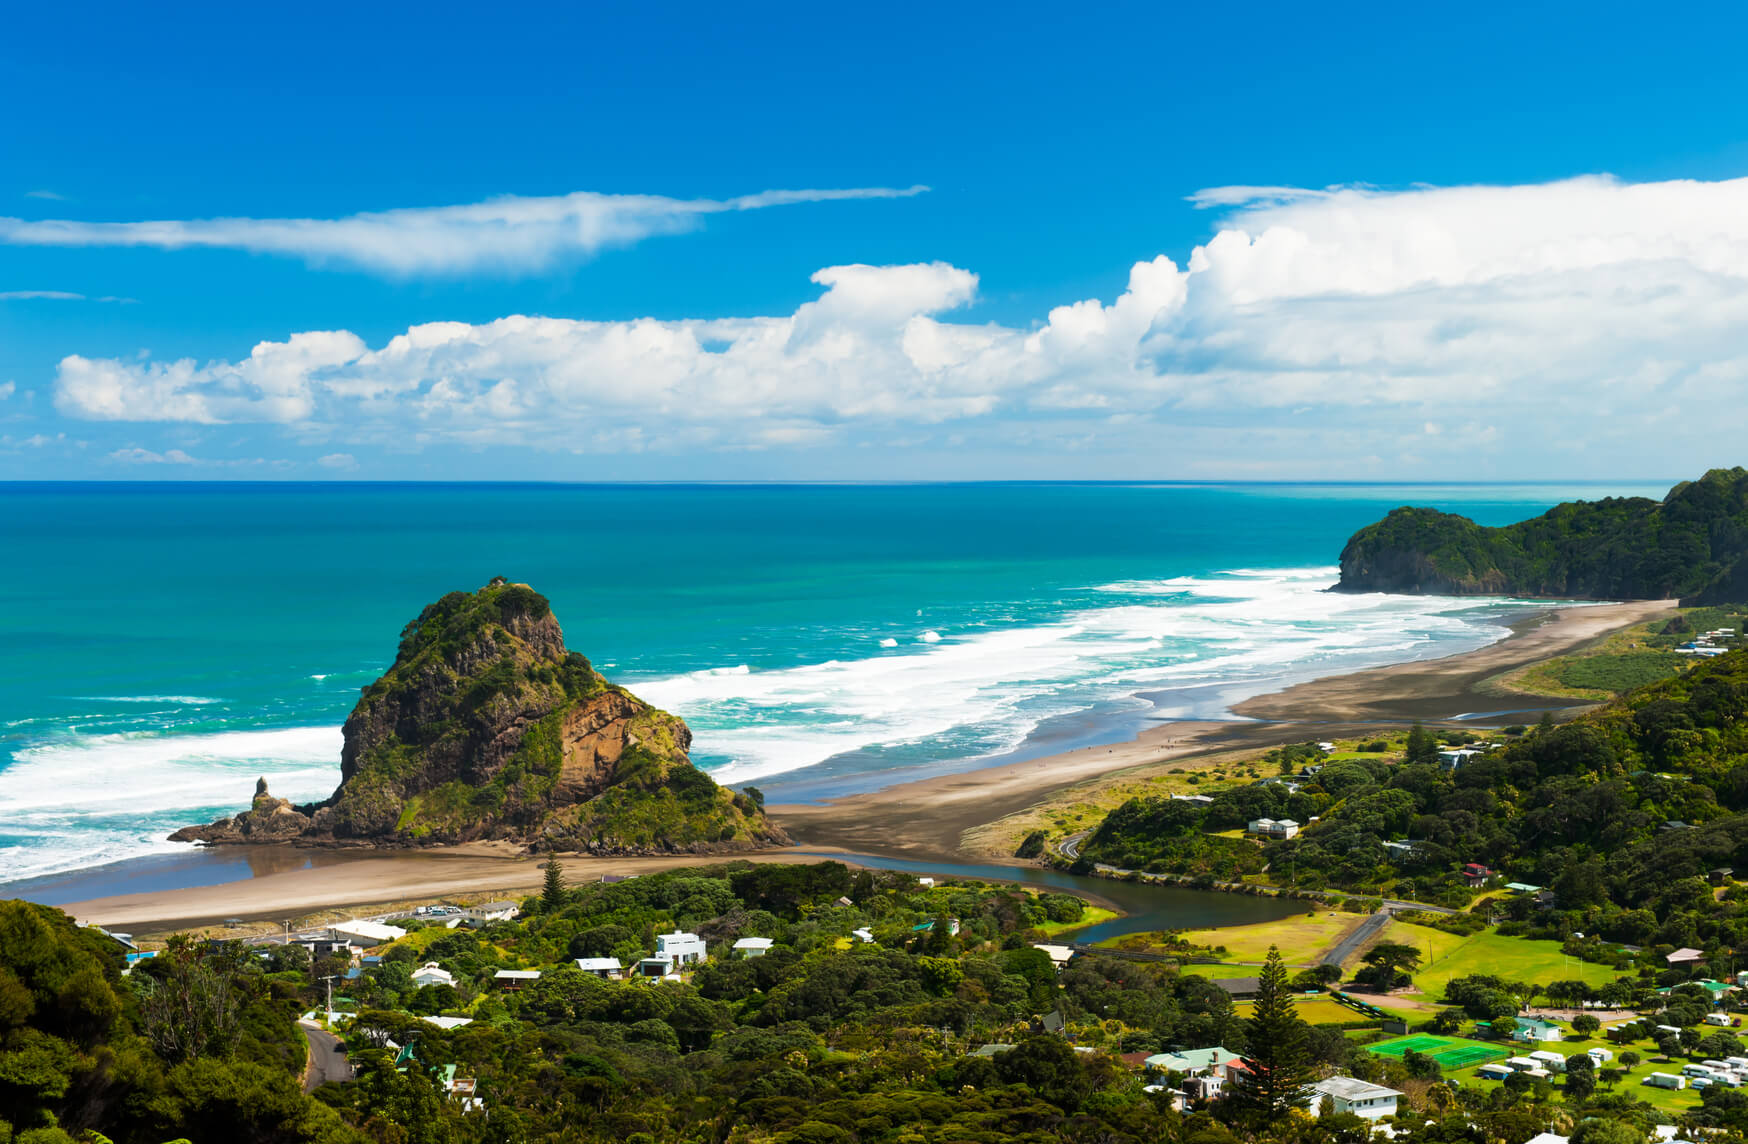 Zurich, Switzerland to Auckland, New Zealand for only €661 roundtrip